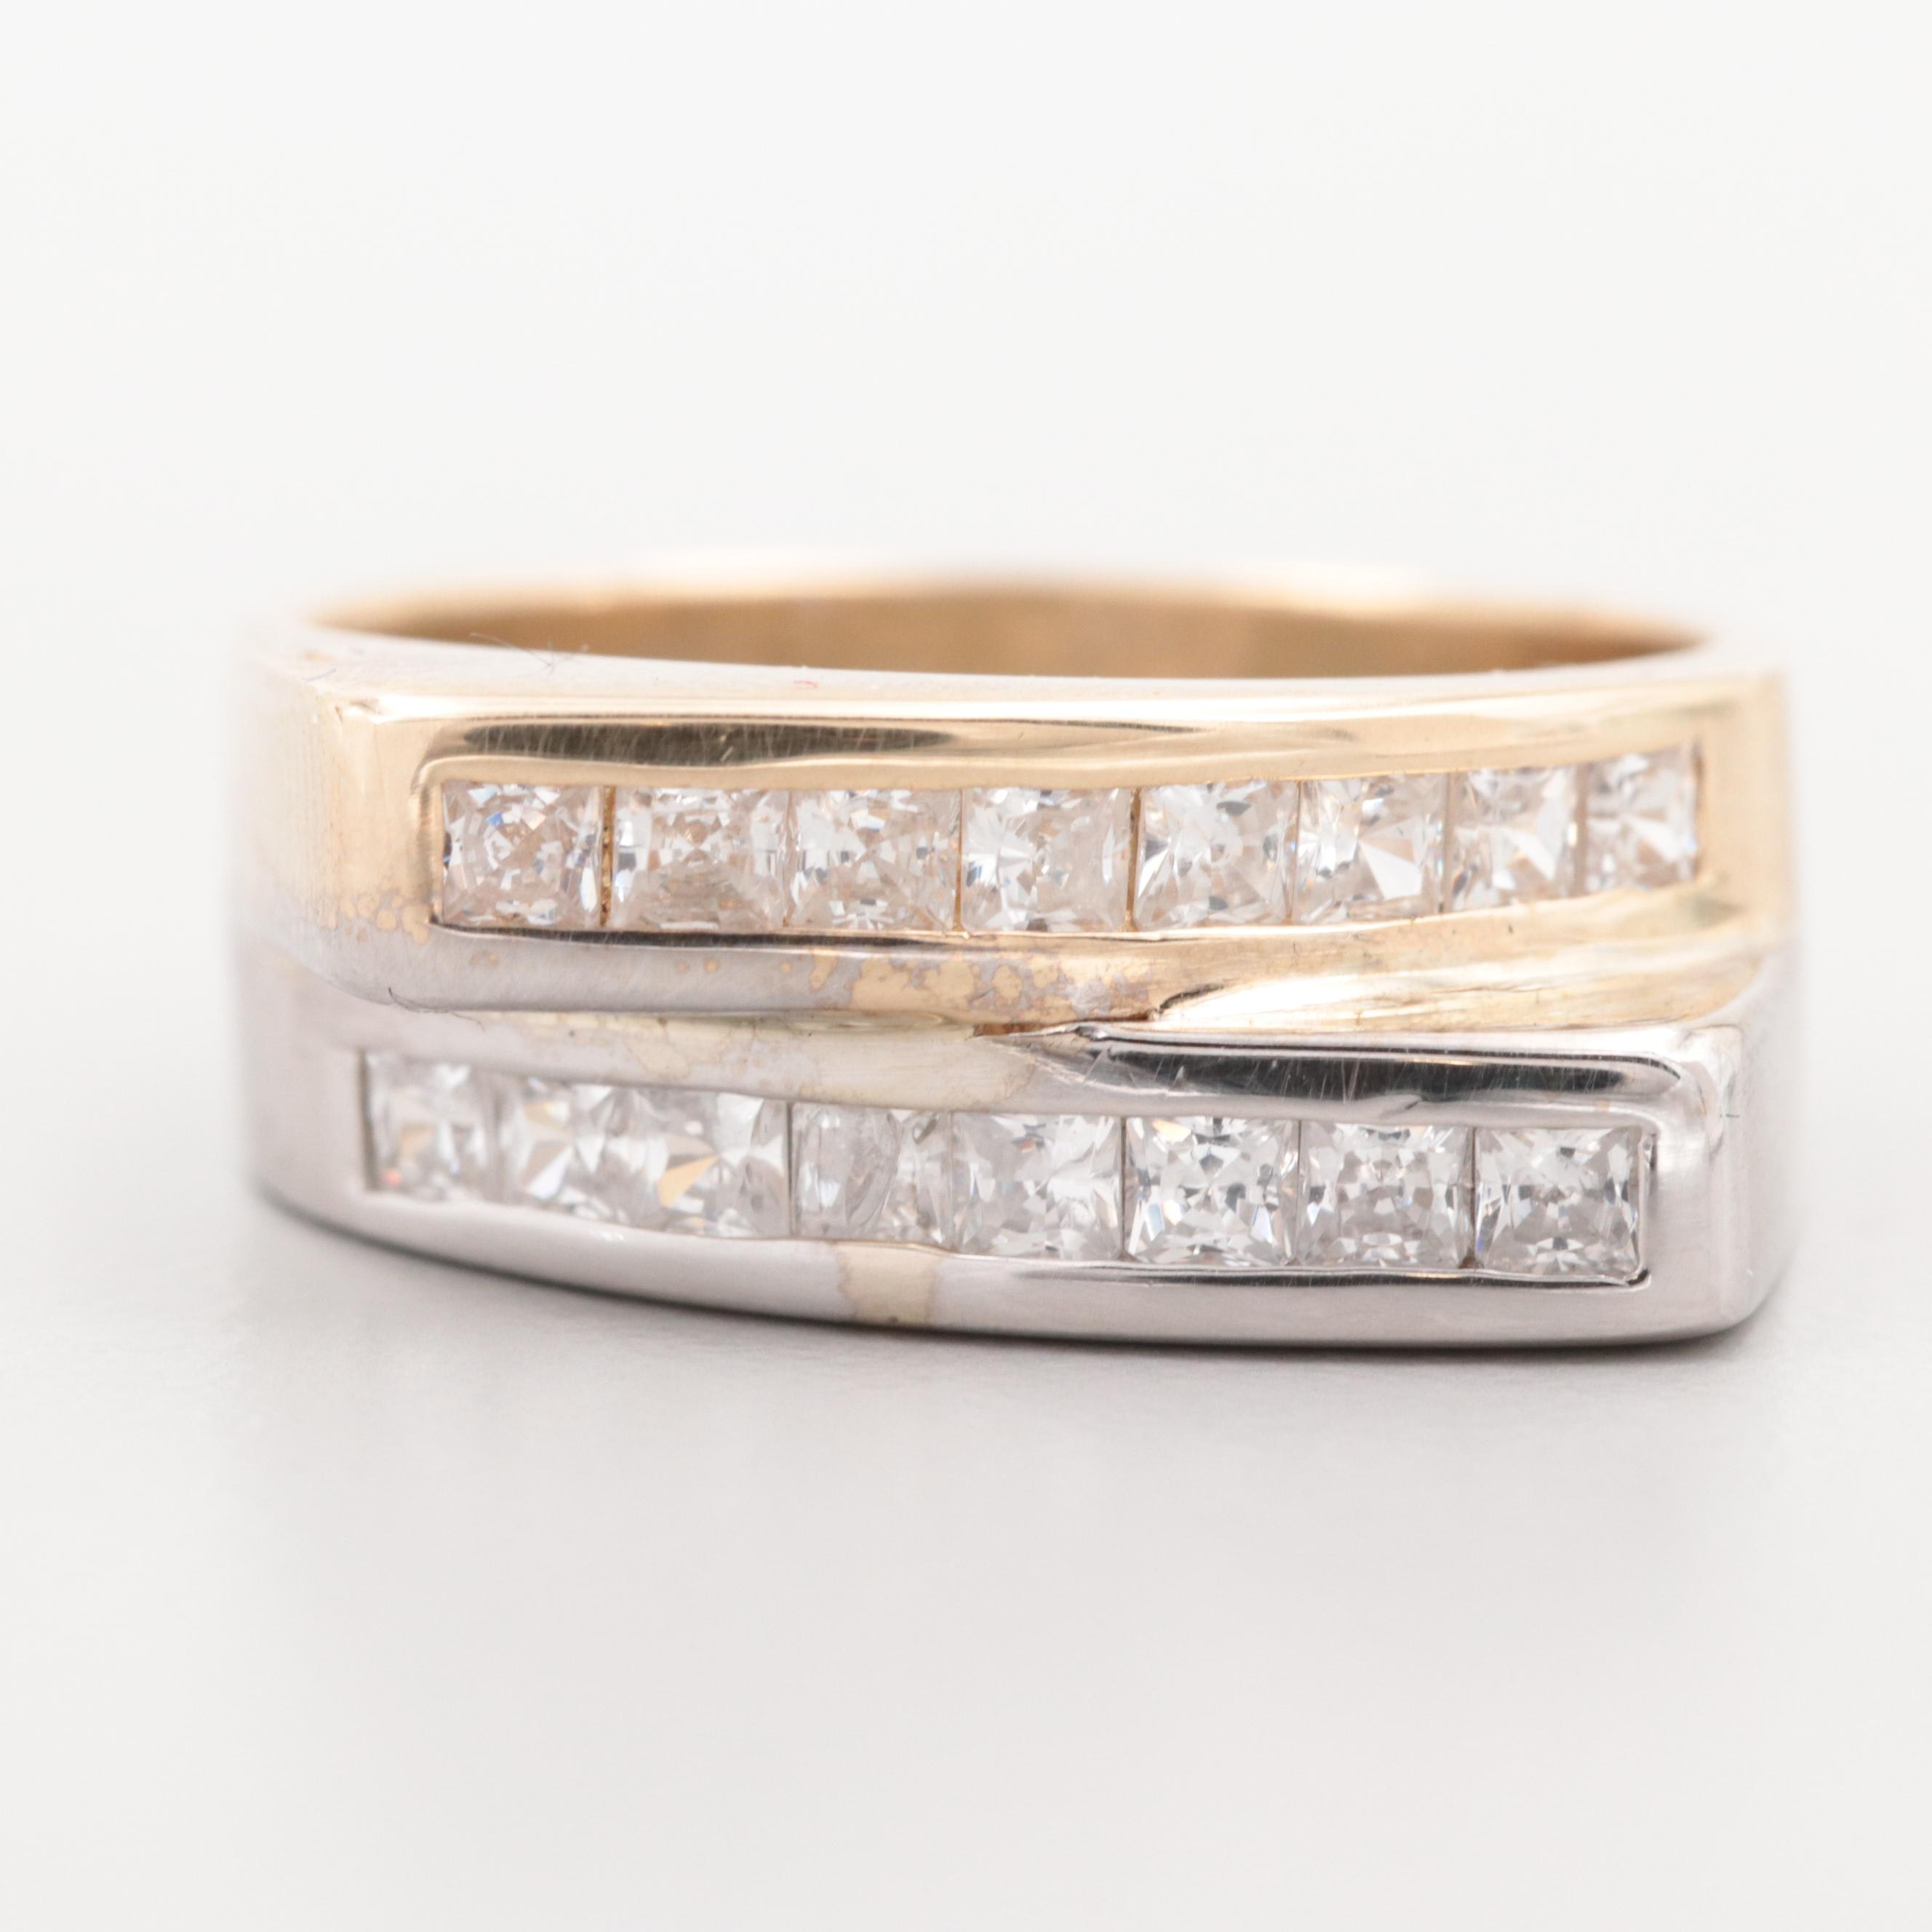 14K Yellow and White Gold Cubic Zirconia Bypass Ring